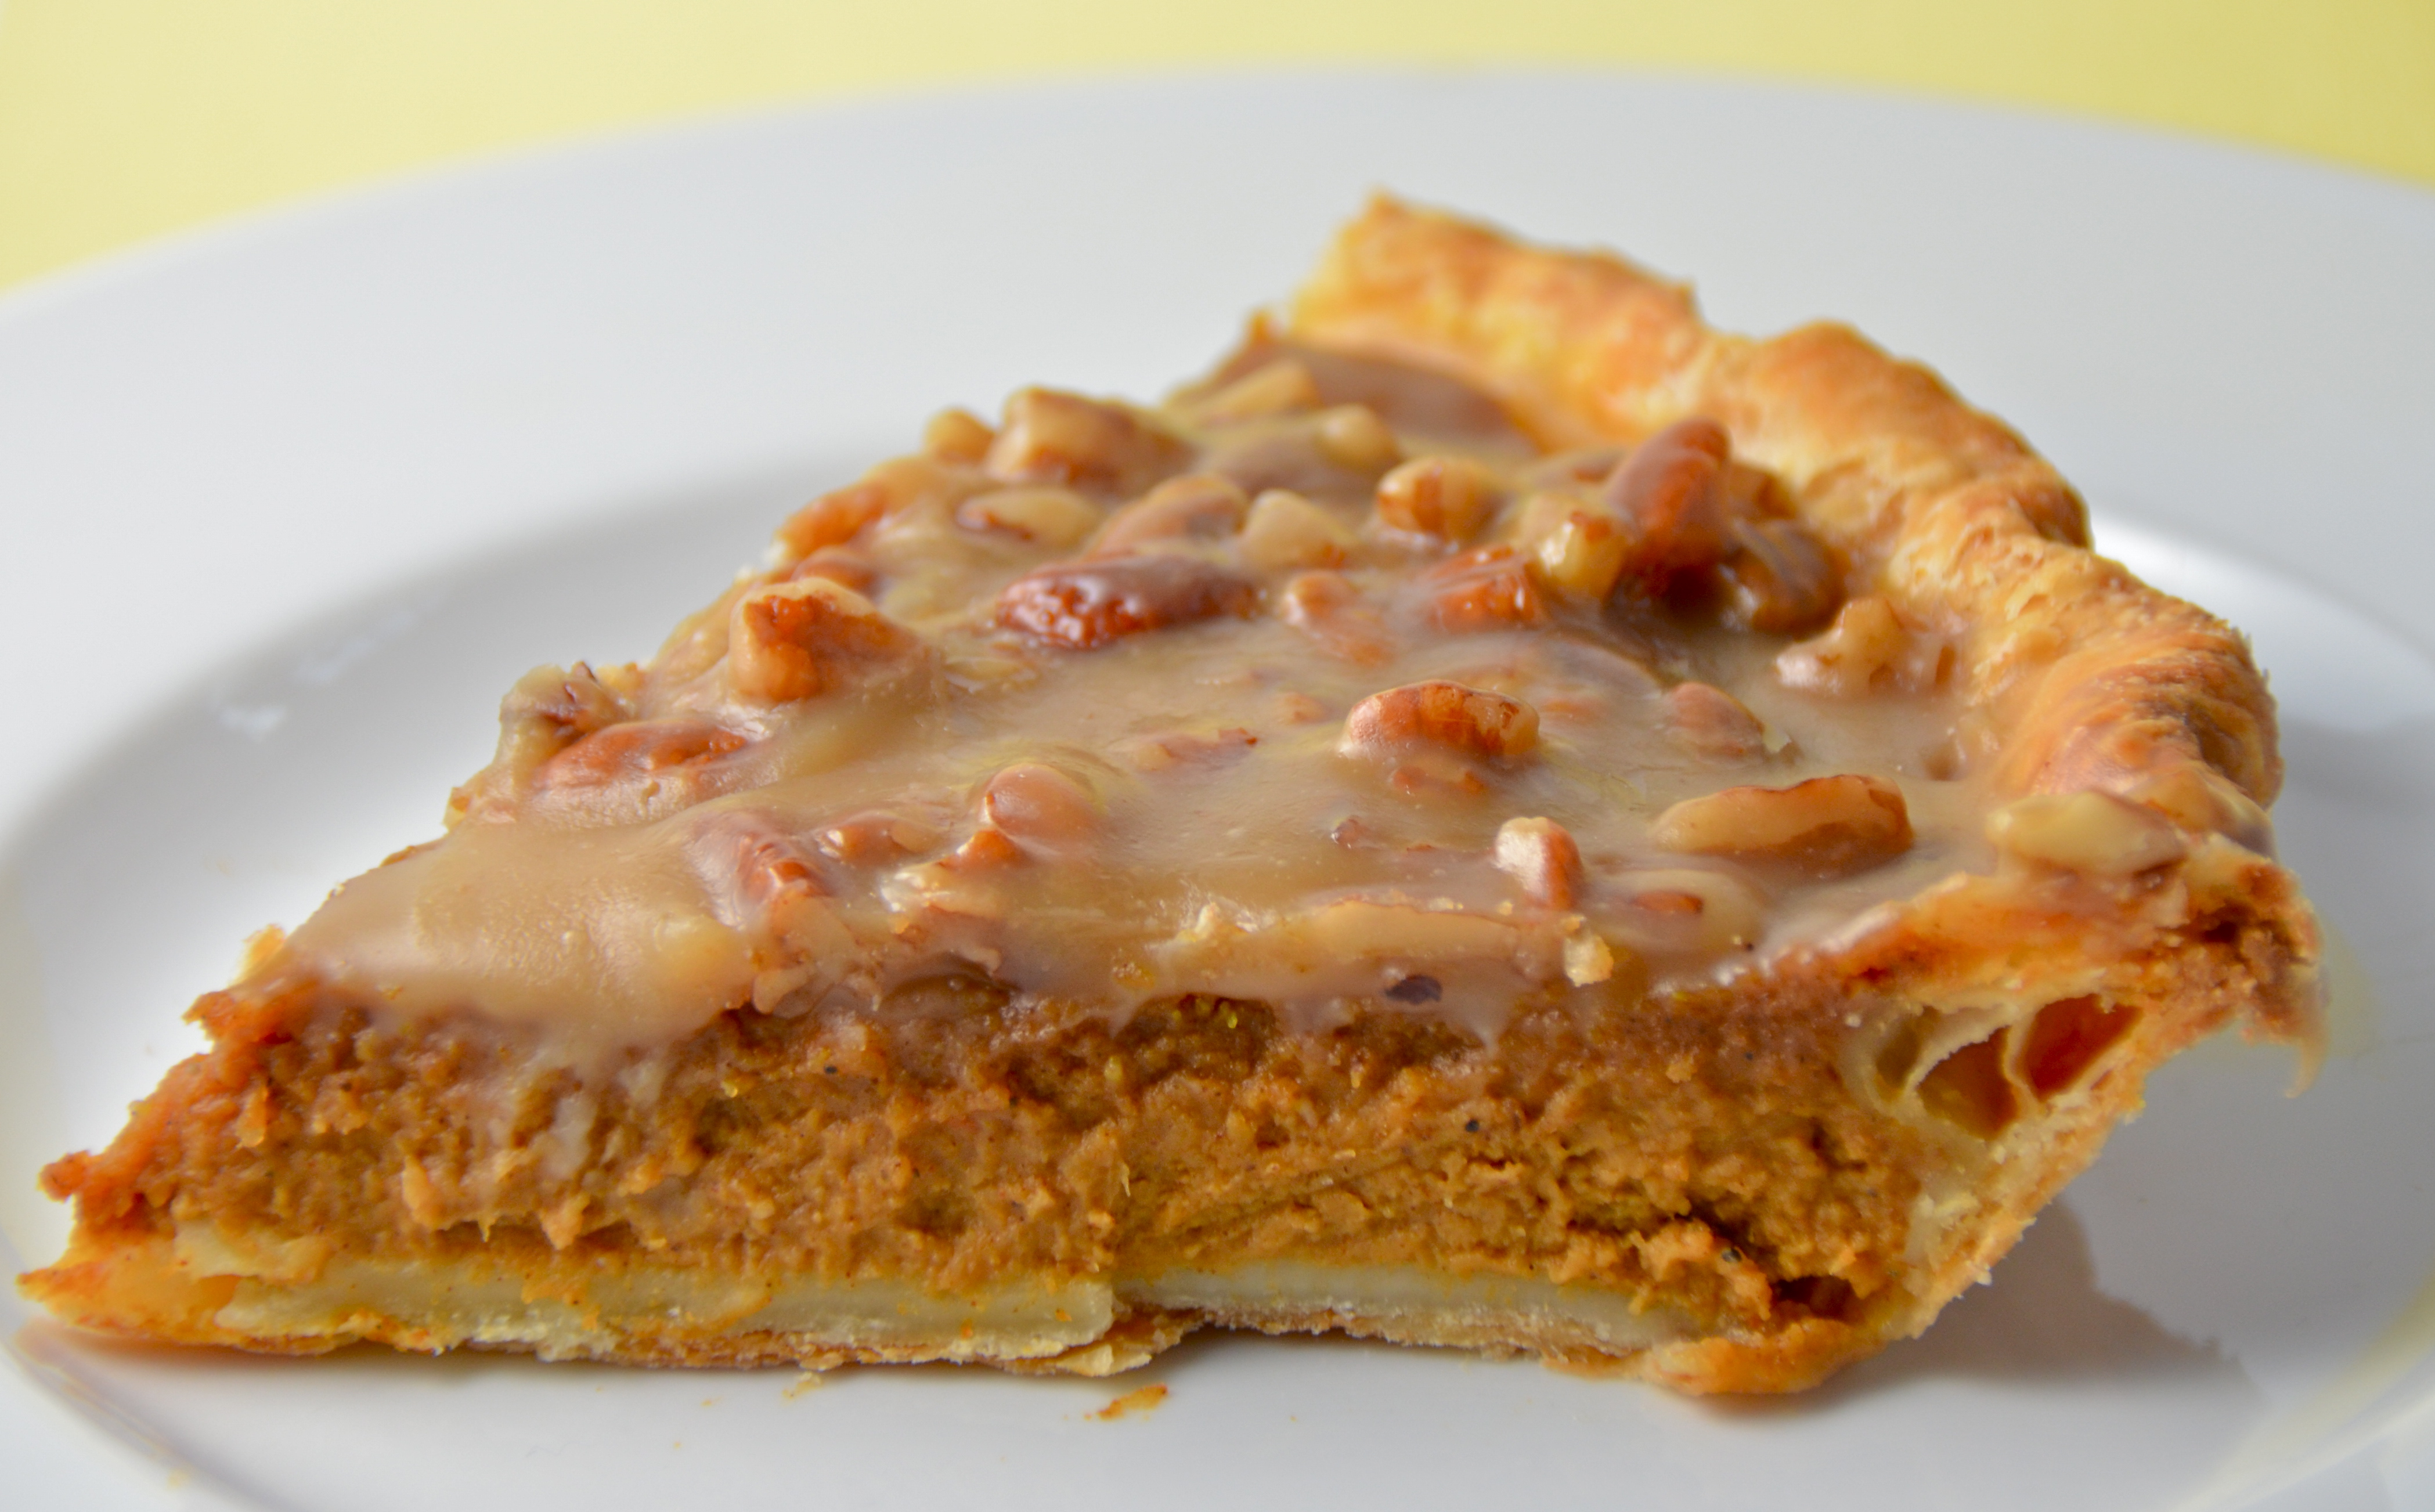 Pumpkin Pie With Pecan Praline Topping. Listening To Solid Gold Balls ...